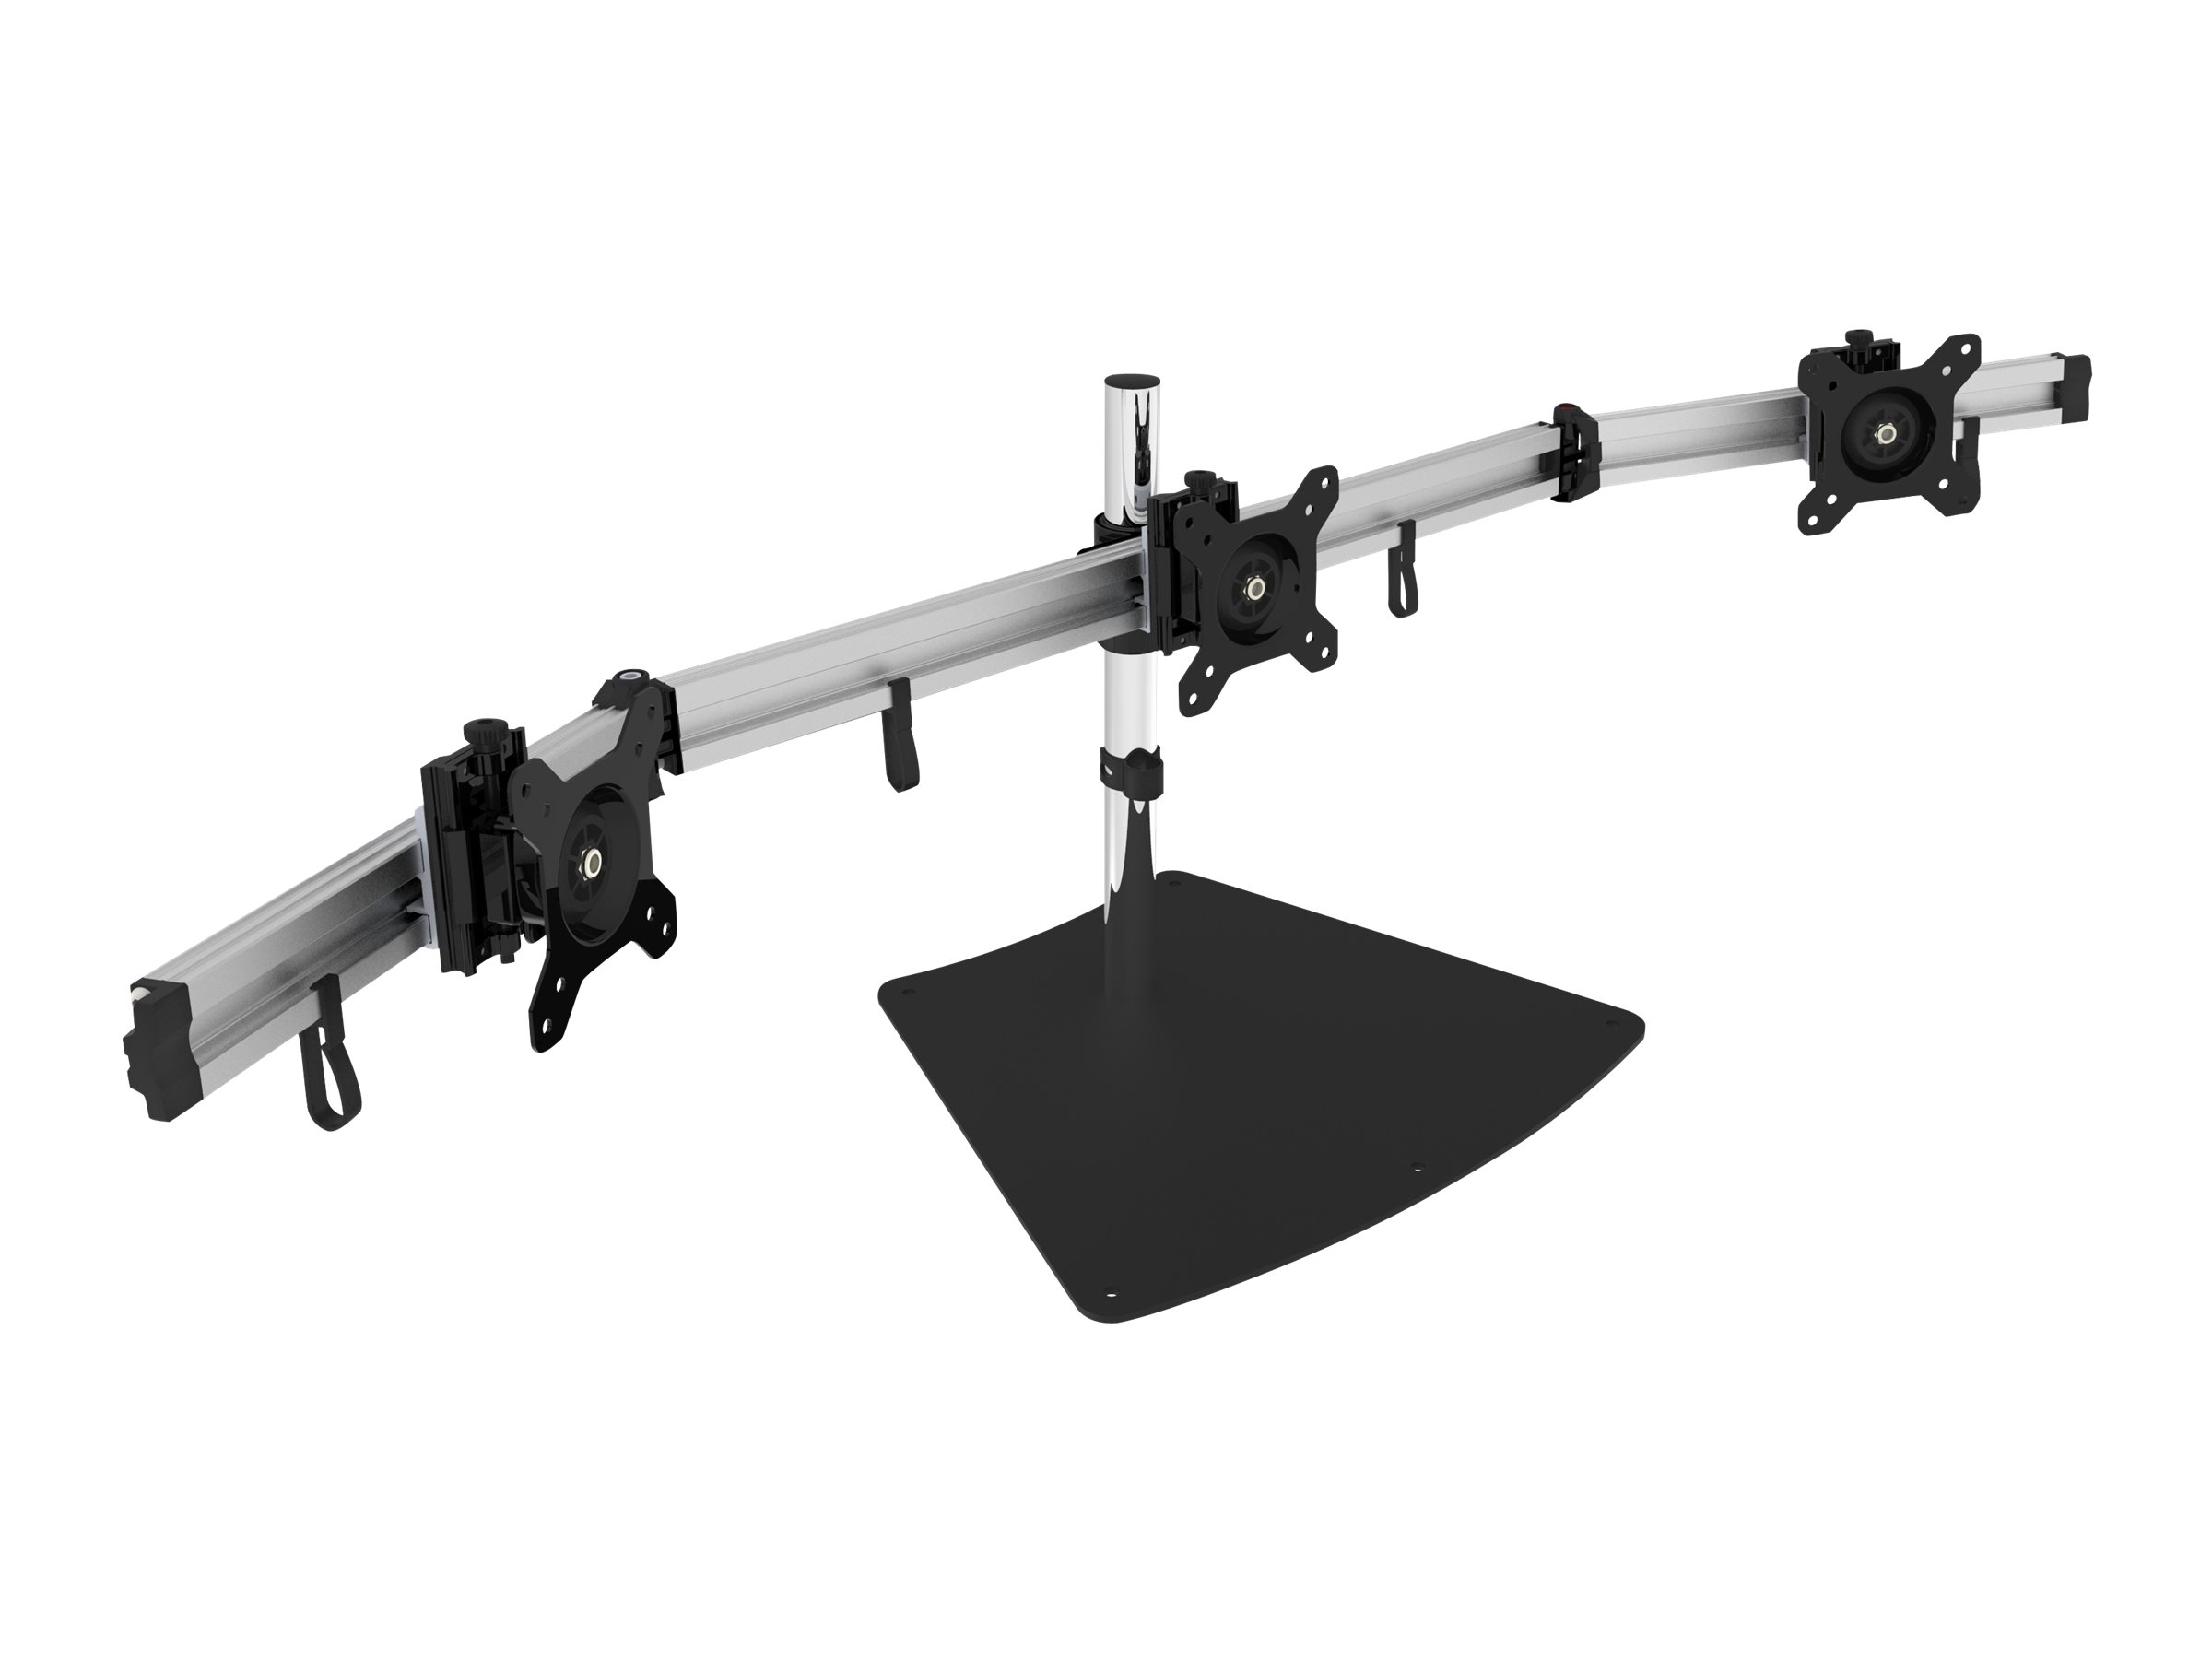 SIIG CE-MT2111-S1 Easy-Adjust Triple Monitor Desk Stand - desk mount